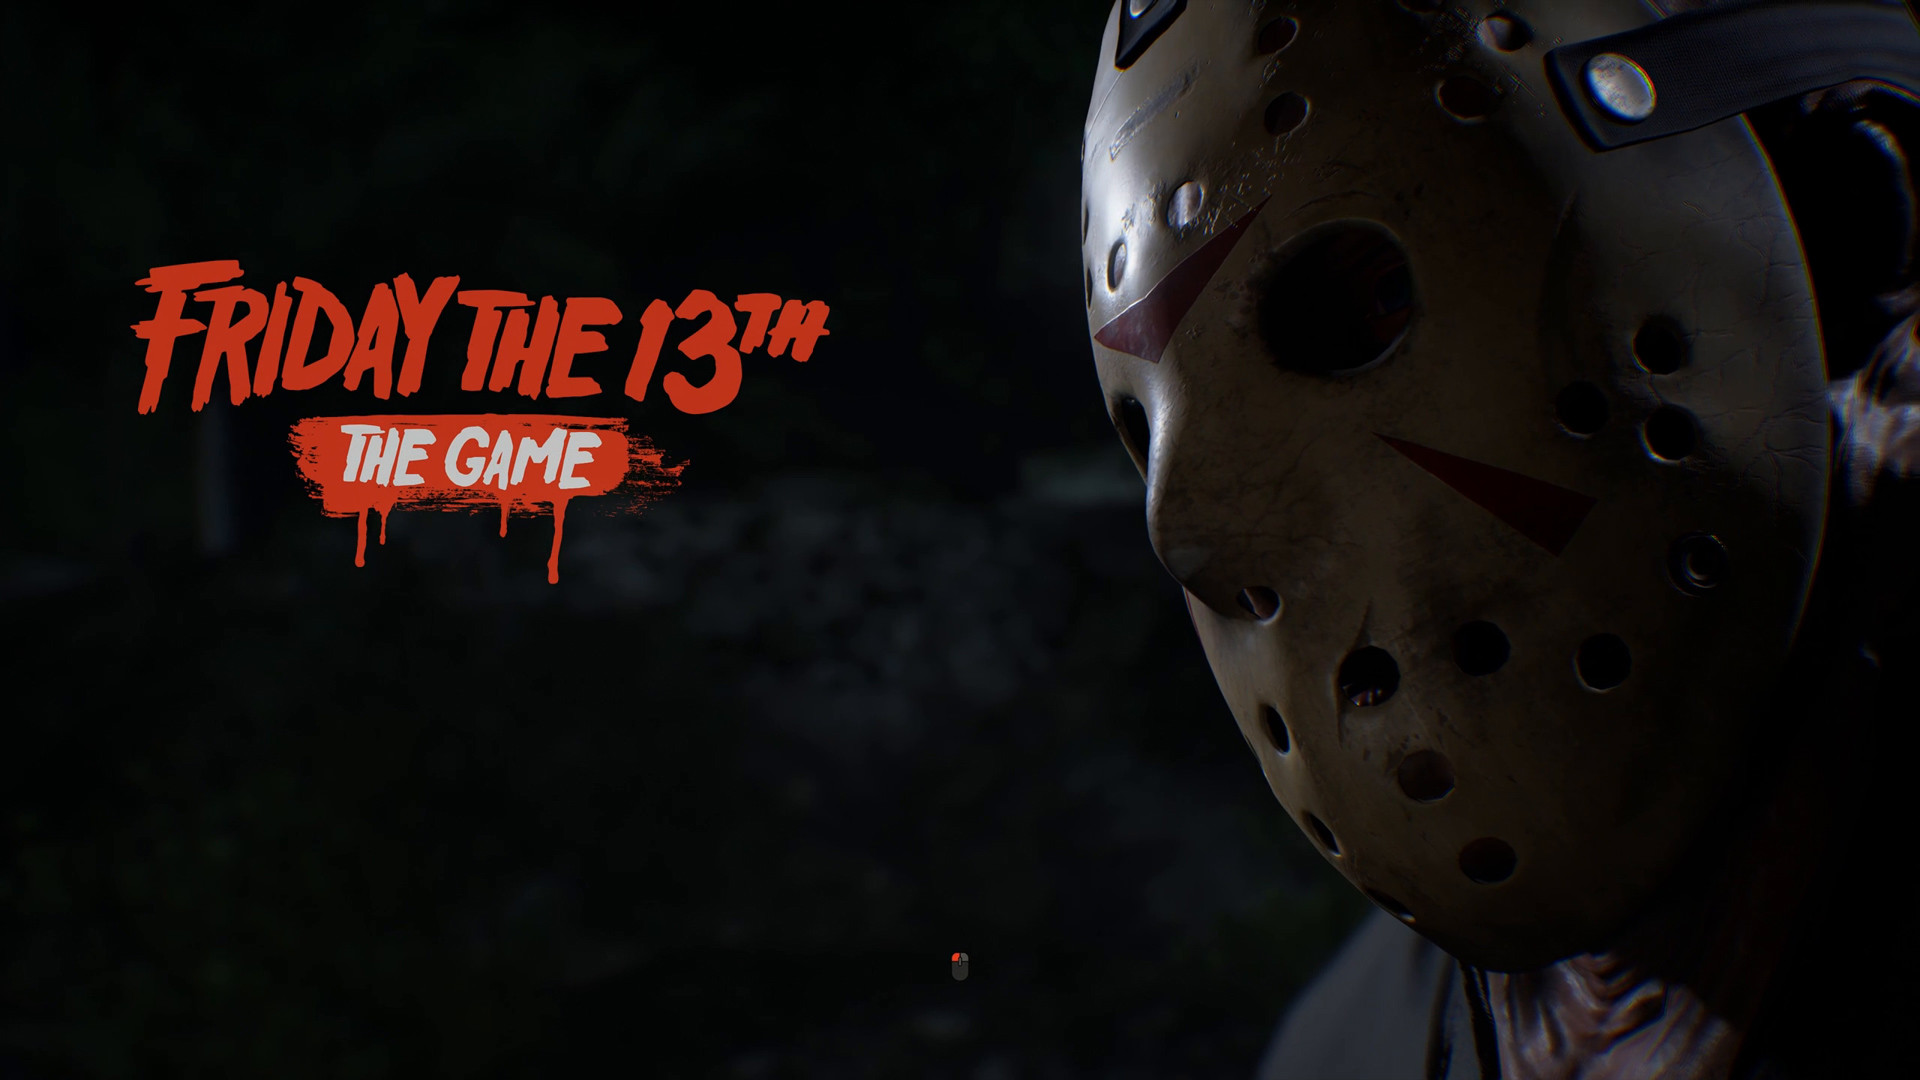 Res: 1920x1080, Jason z Friday the 13th: The Game Wallpaper from Friday the 13th: The Game